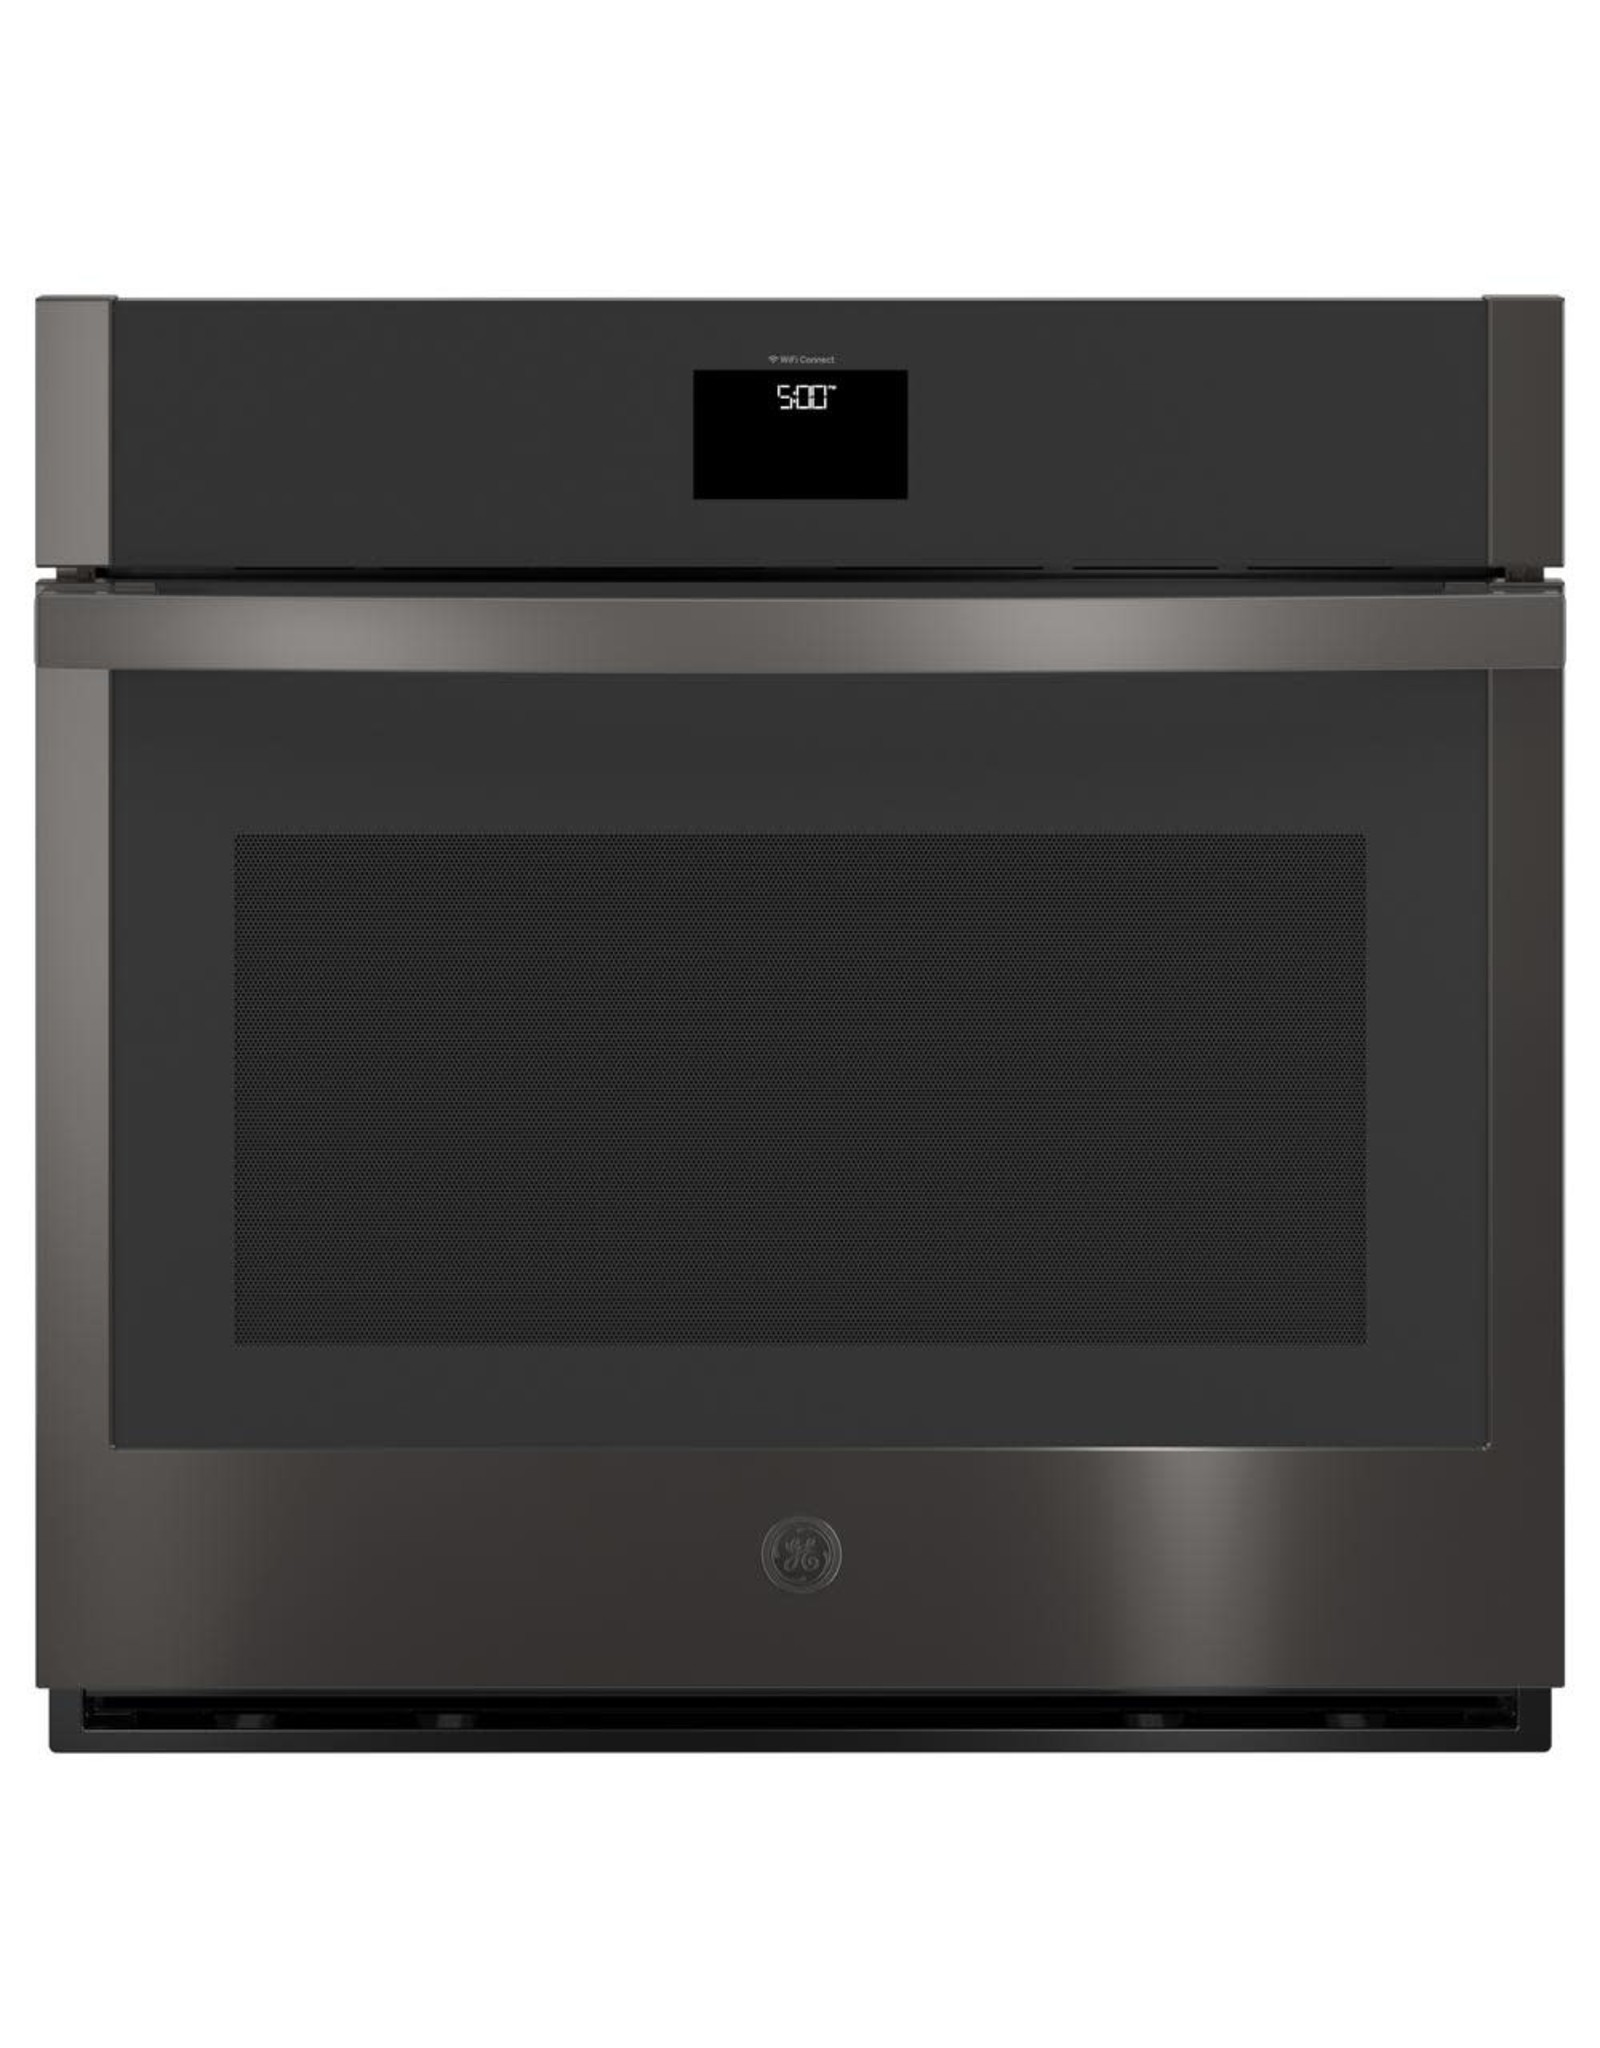 GE JTS5000BNTS 30 in. 5 cu. ft. Smart Single Electric Wall Oven with Convection Self-Cleaning in Black Stainless Steel